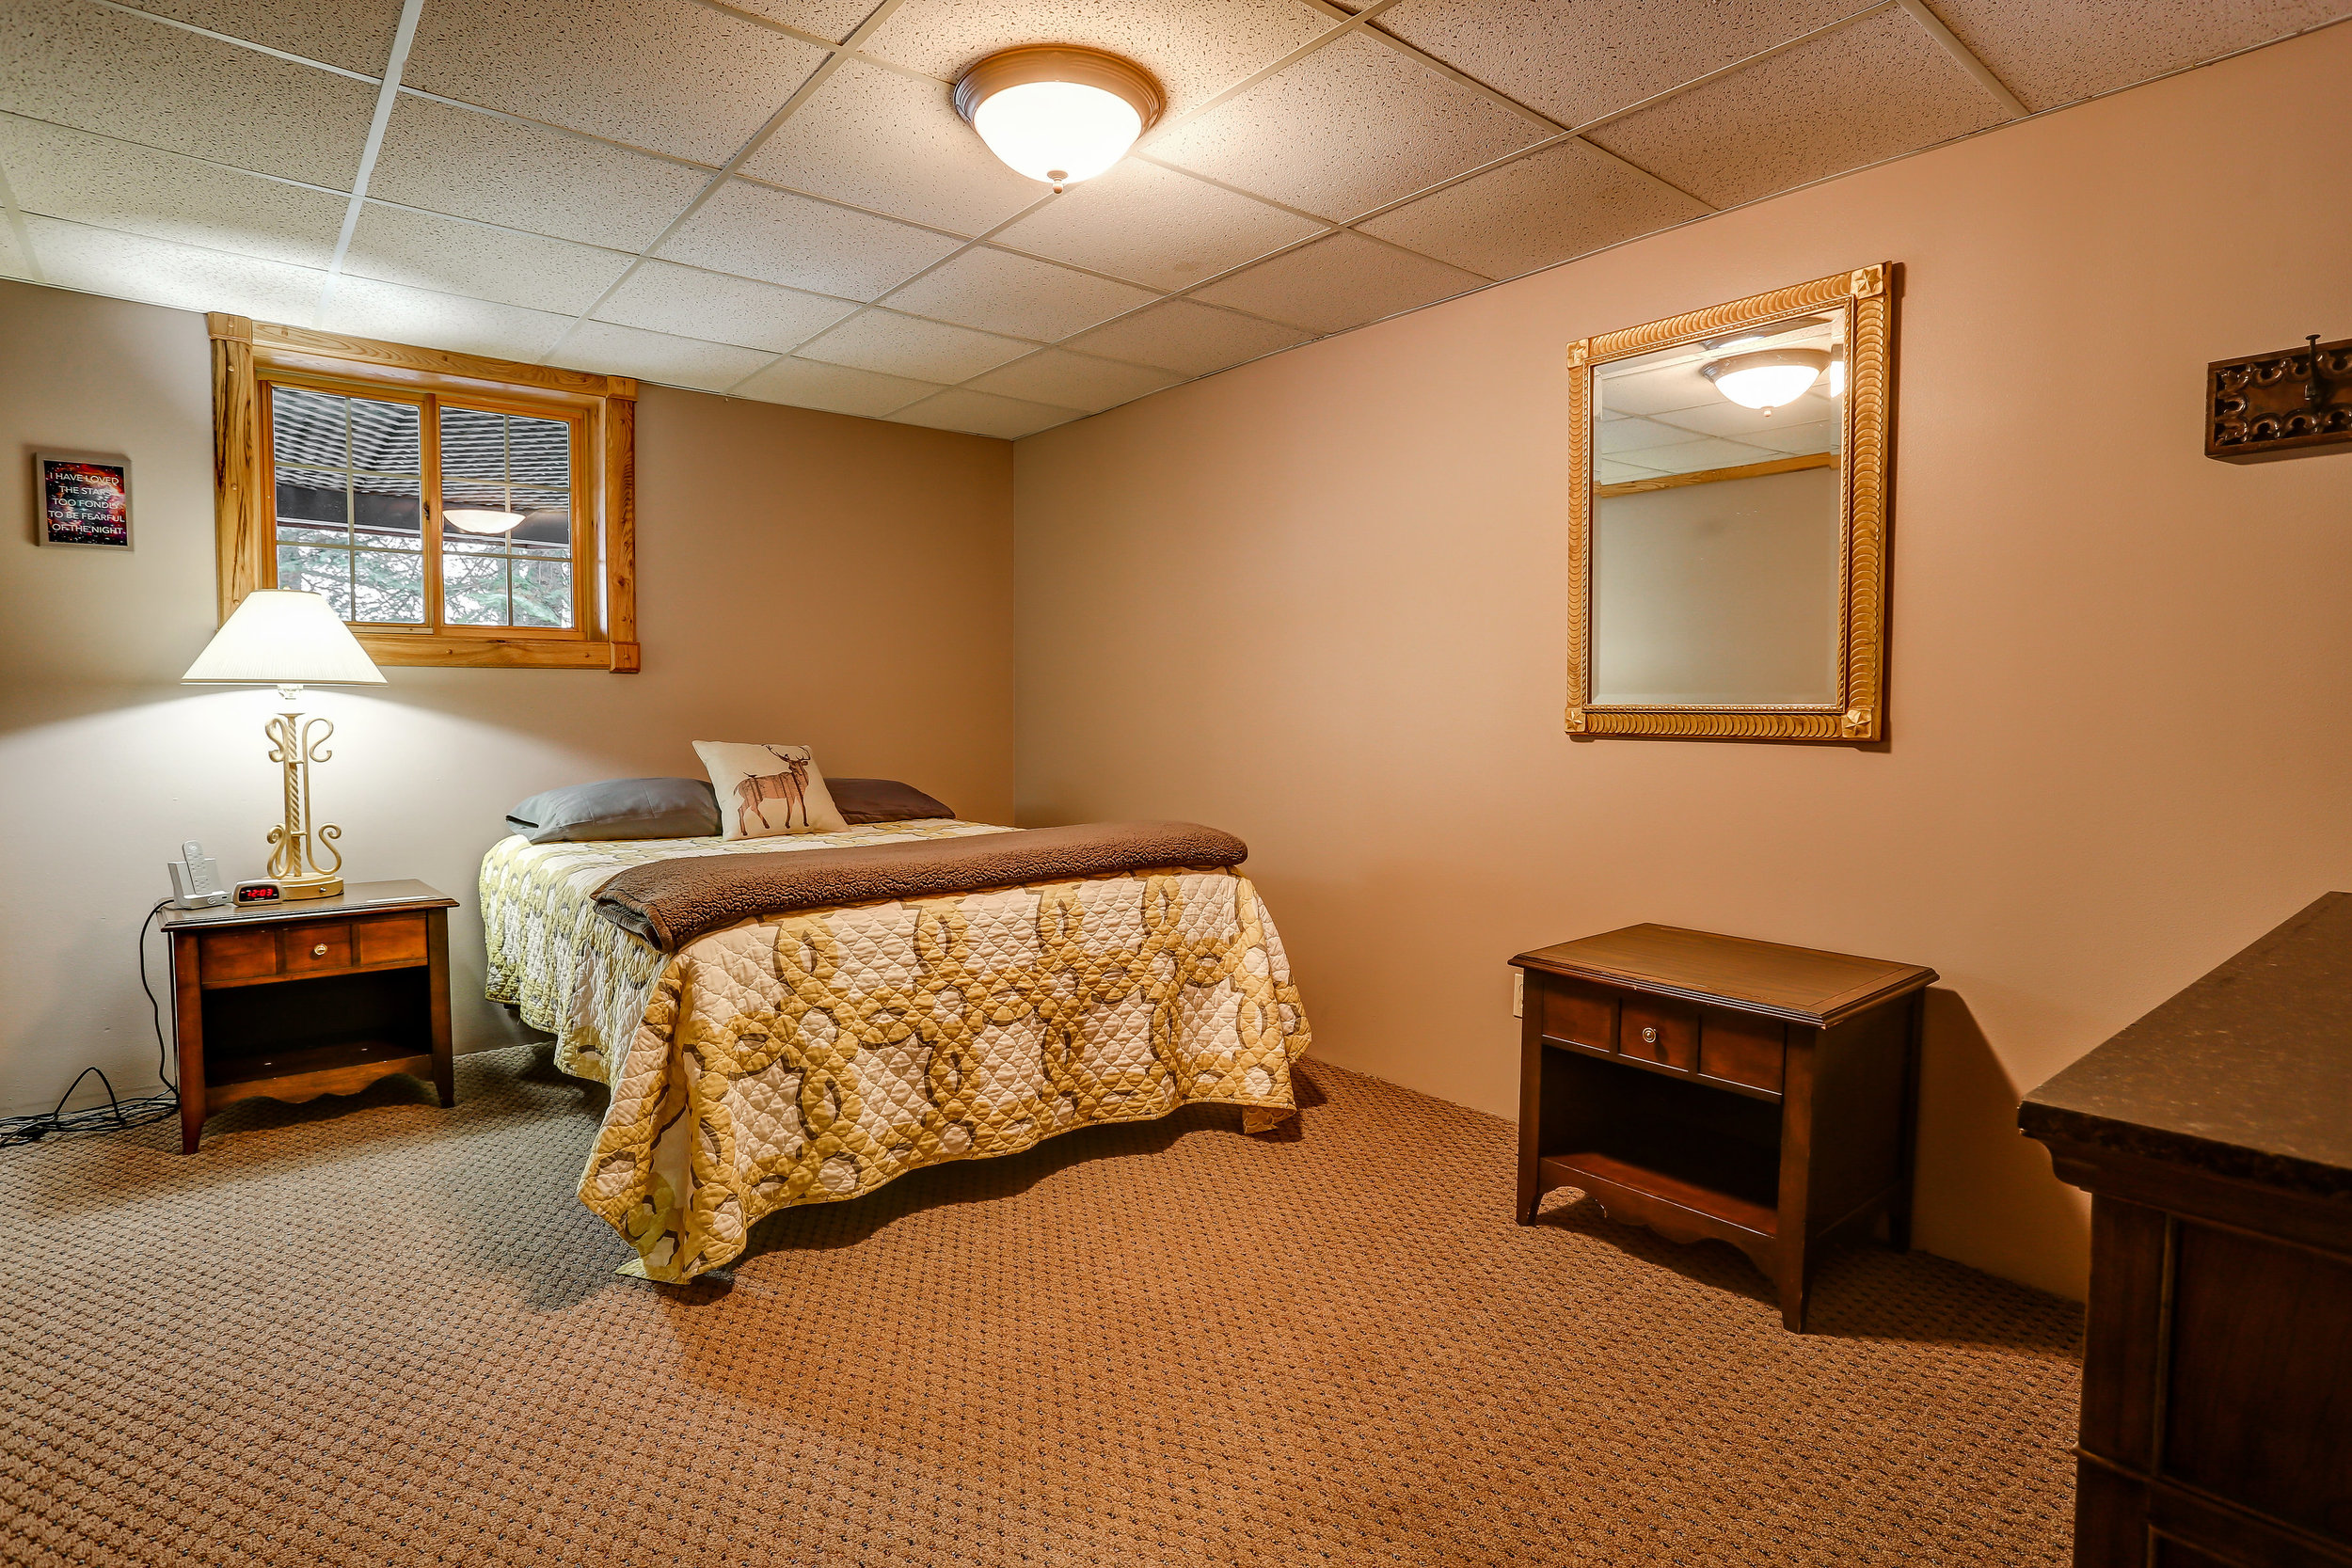 Happy Camper Room - Downstairs | Queen bed and shared bathroom in hallway